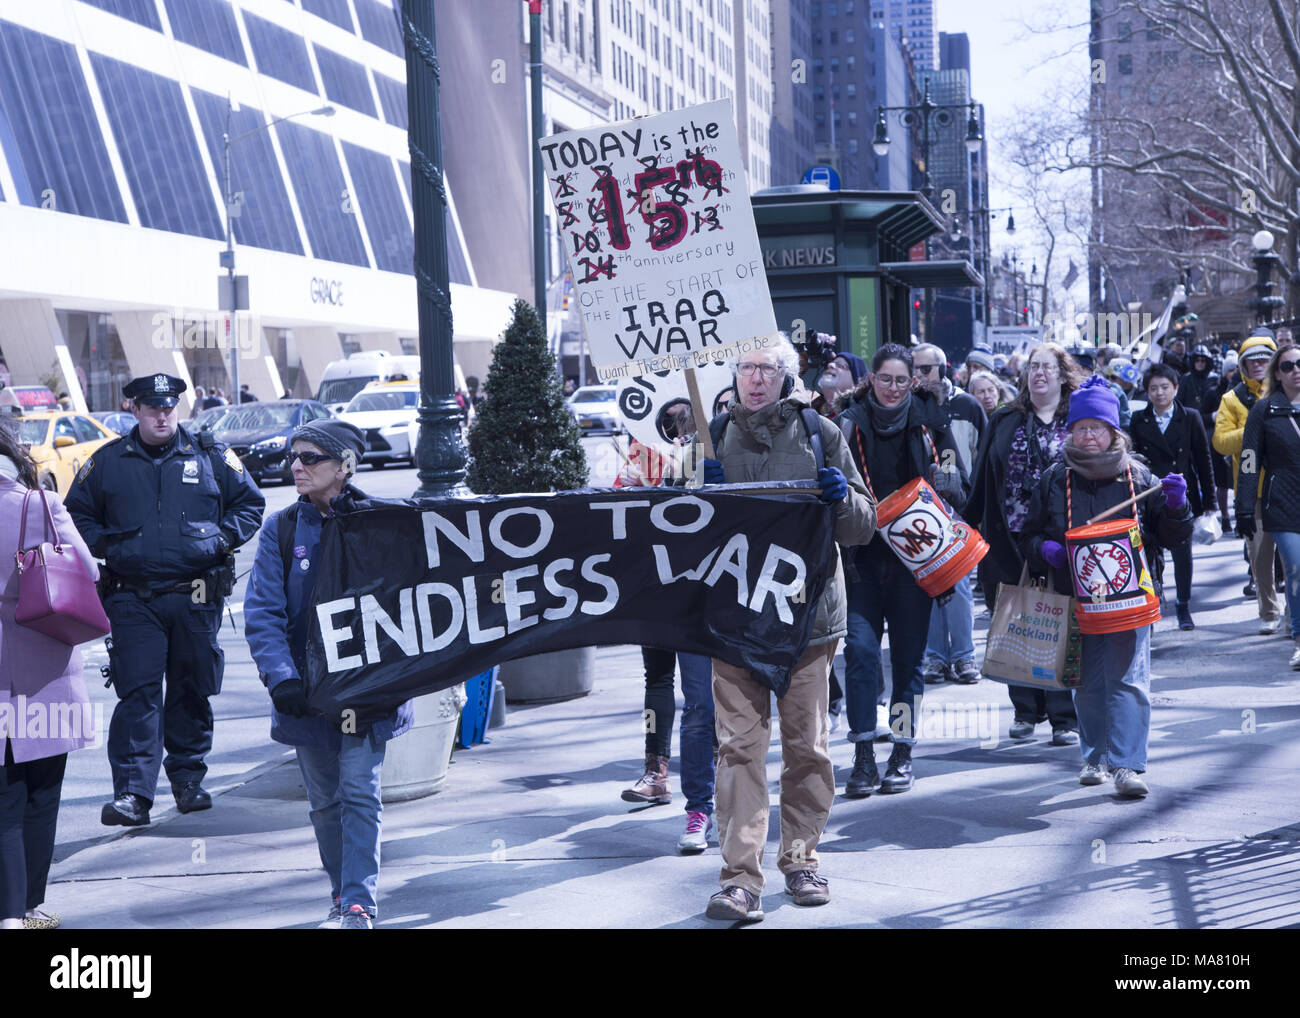 On the 15th Anniversary of the American war in Iraq peace activists critical of America's aggressive military actions around the world came to speak out against all US military aggression. New York City. Stock Photo